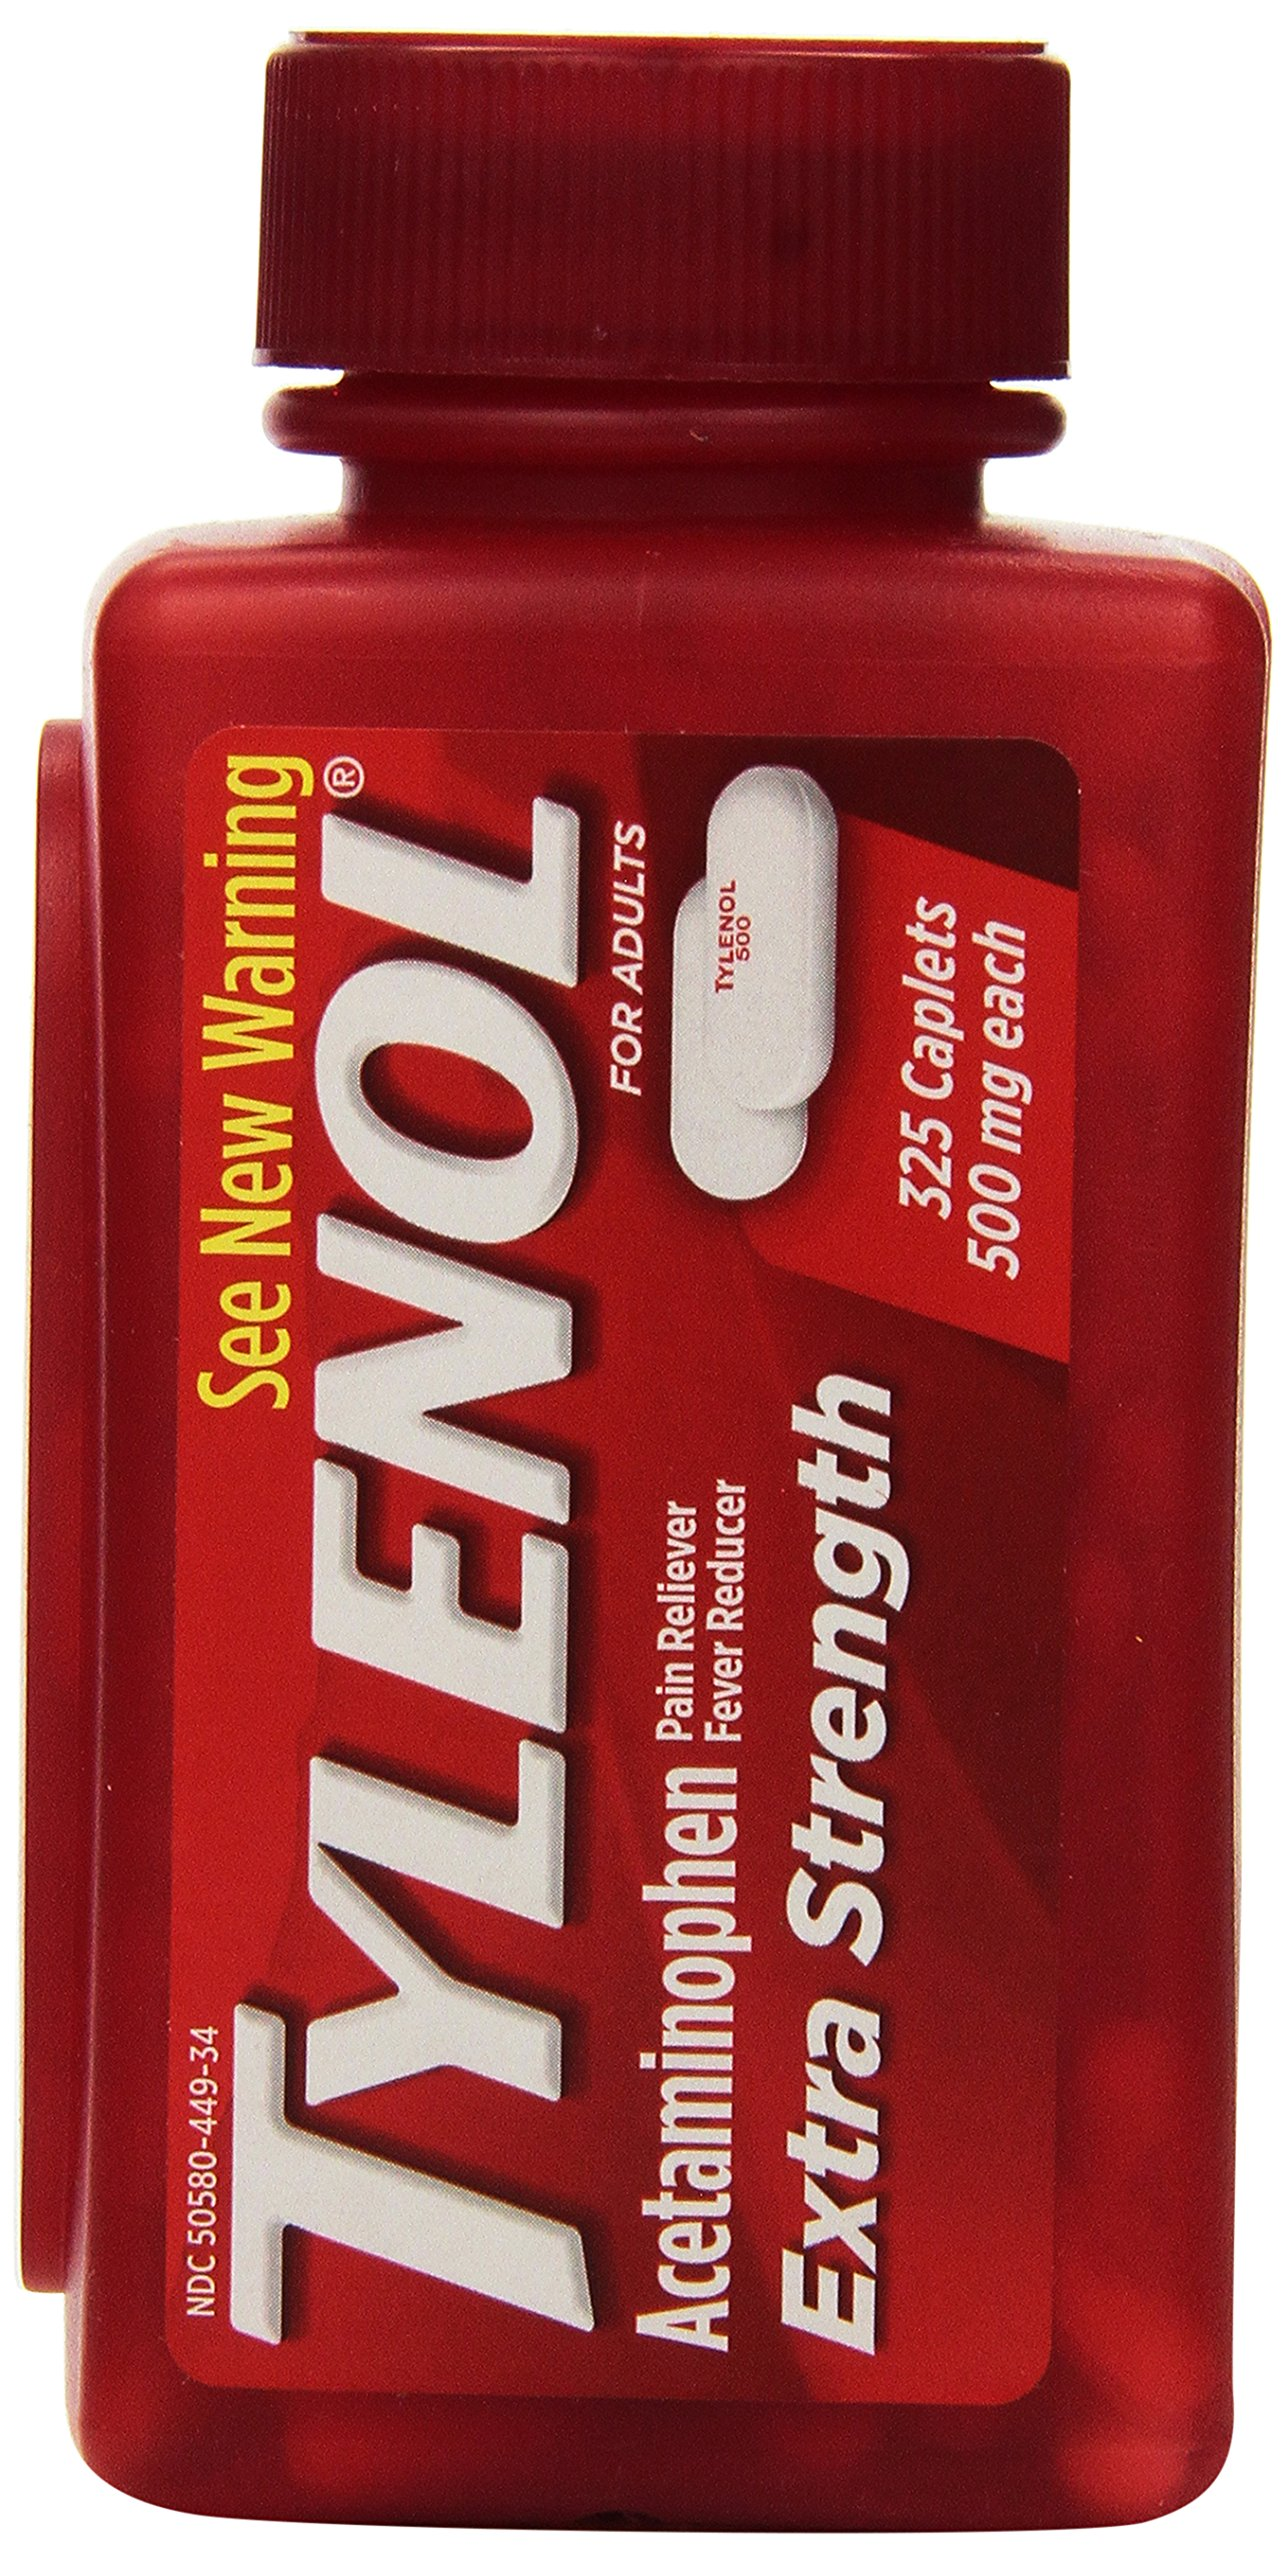 Tylenol Extra Strength Acetaminophen 500 Mg 325 Caplets